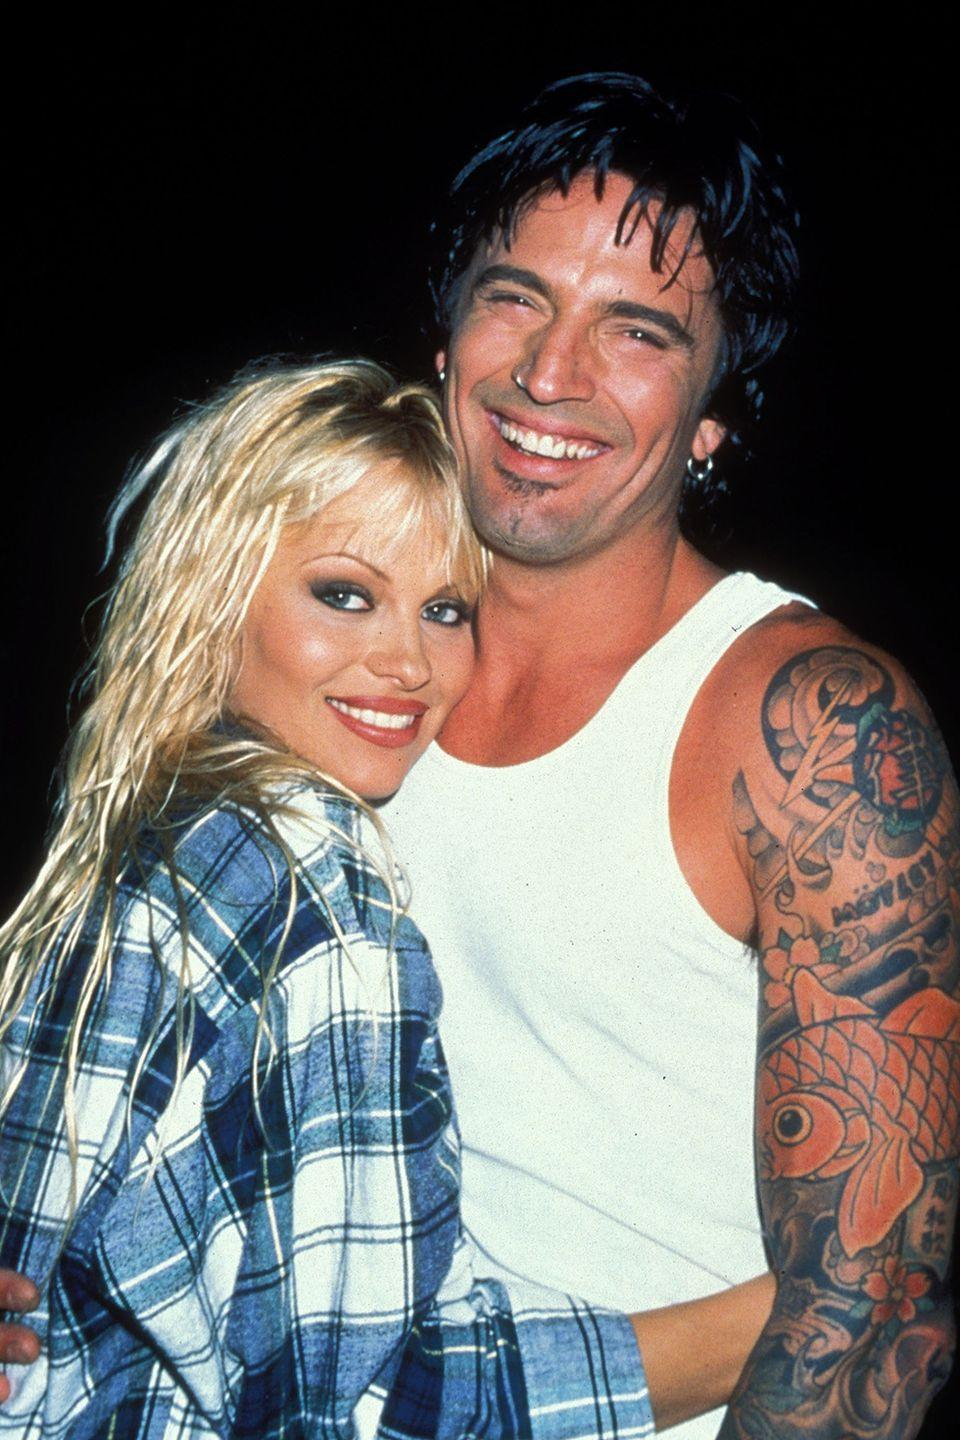 "<p>It's been more than two decades since this duo married in Cancun after FOUR DAYS (we'll repeat: four days) of knowing each other, per <a class=""link rapid-noclick-resp"" href=""https://www.billboard.com/articles/news/6479855/tommy-lee-pam-anderson-marriage-anniversary"" rel=""nofollow noopener"" target=""_blank"" data-ylk=""slk:Billboard""><em>Billboard</em></a>. They divorced in 1998.</p>"